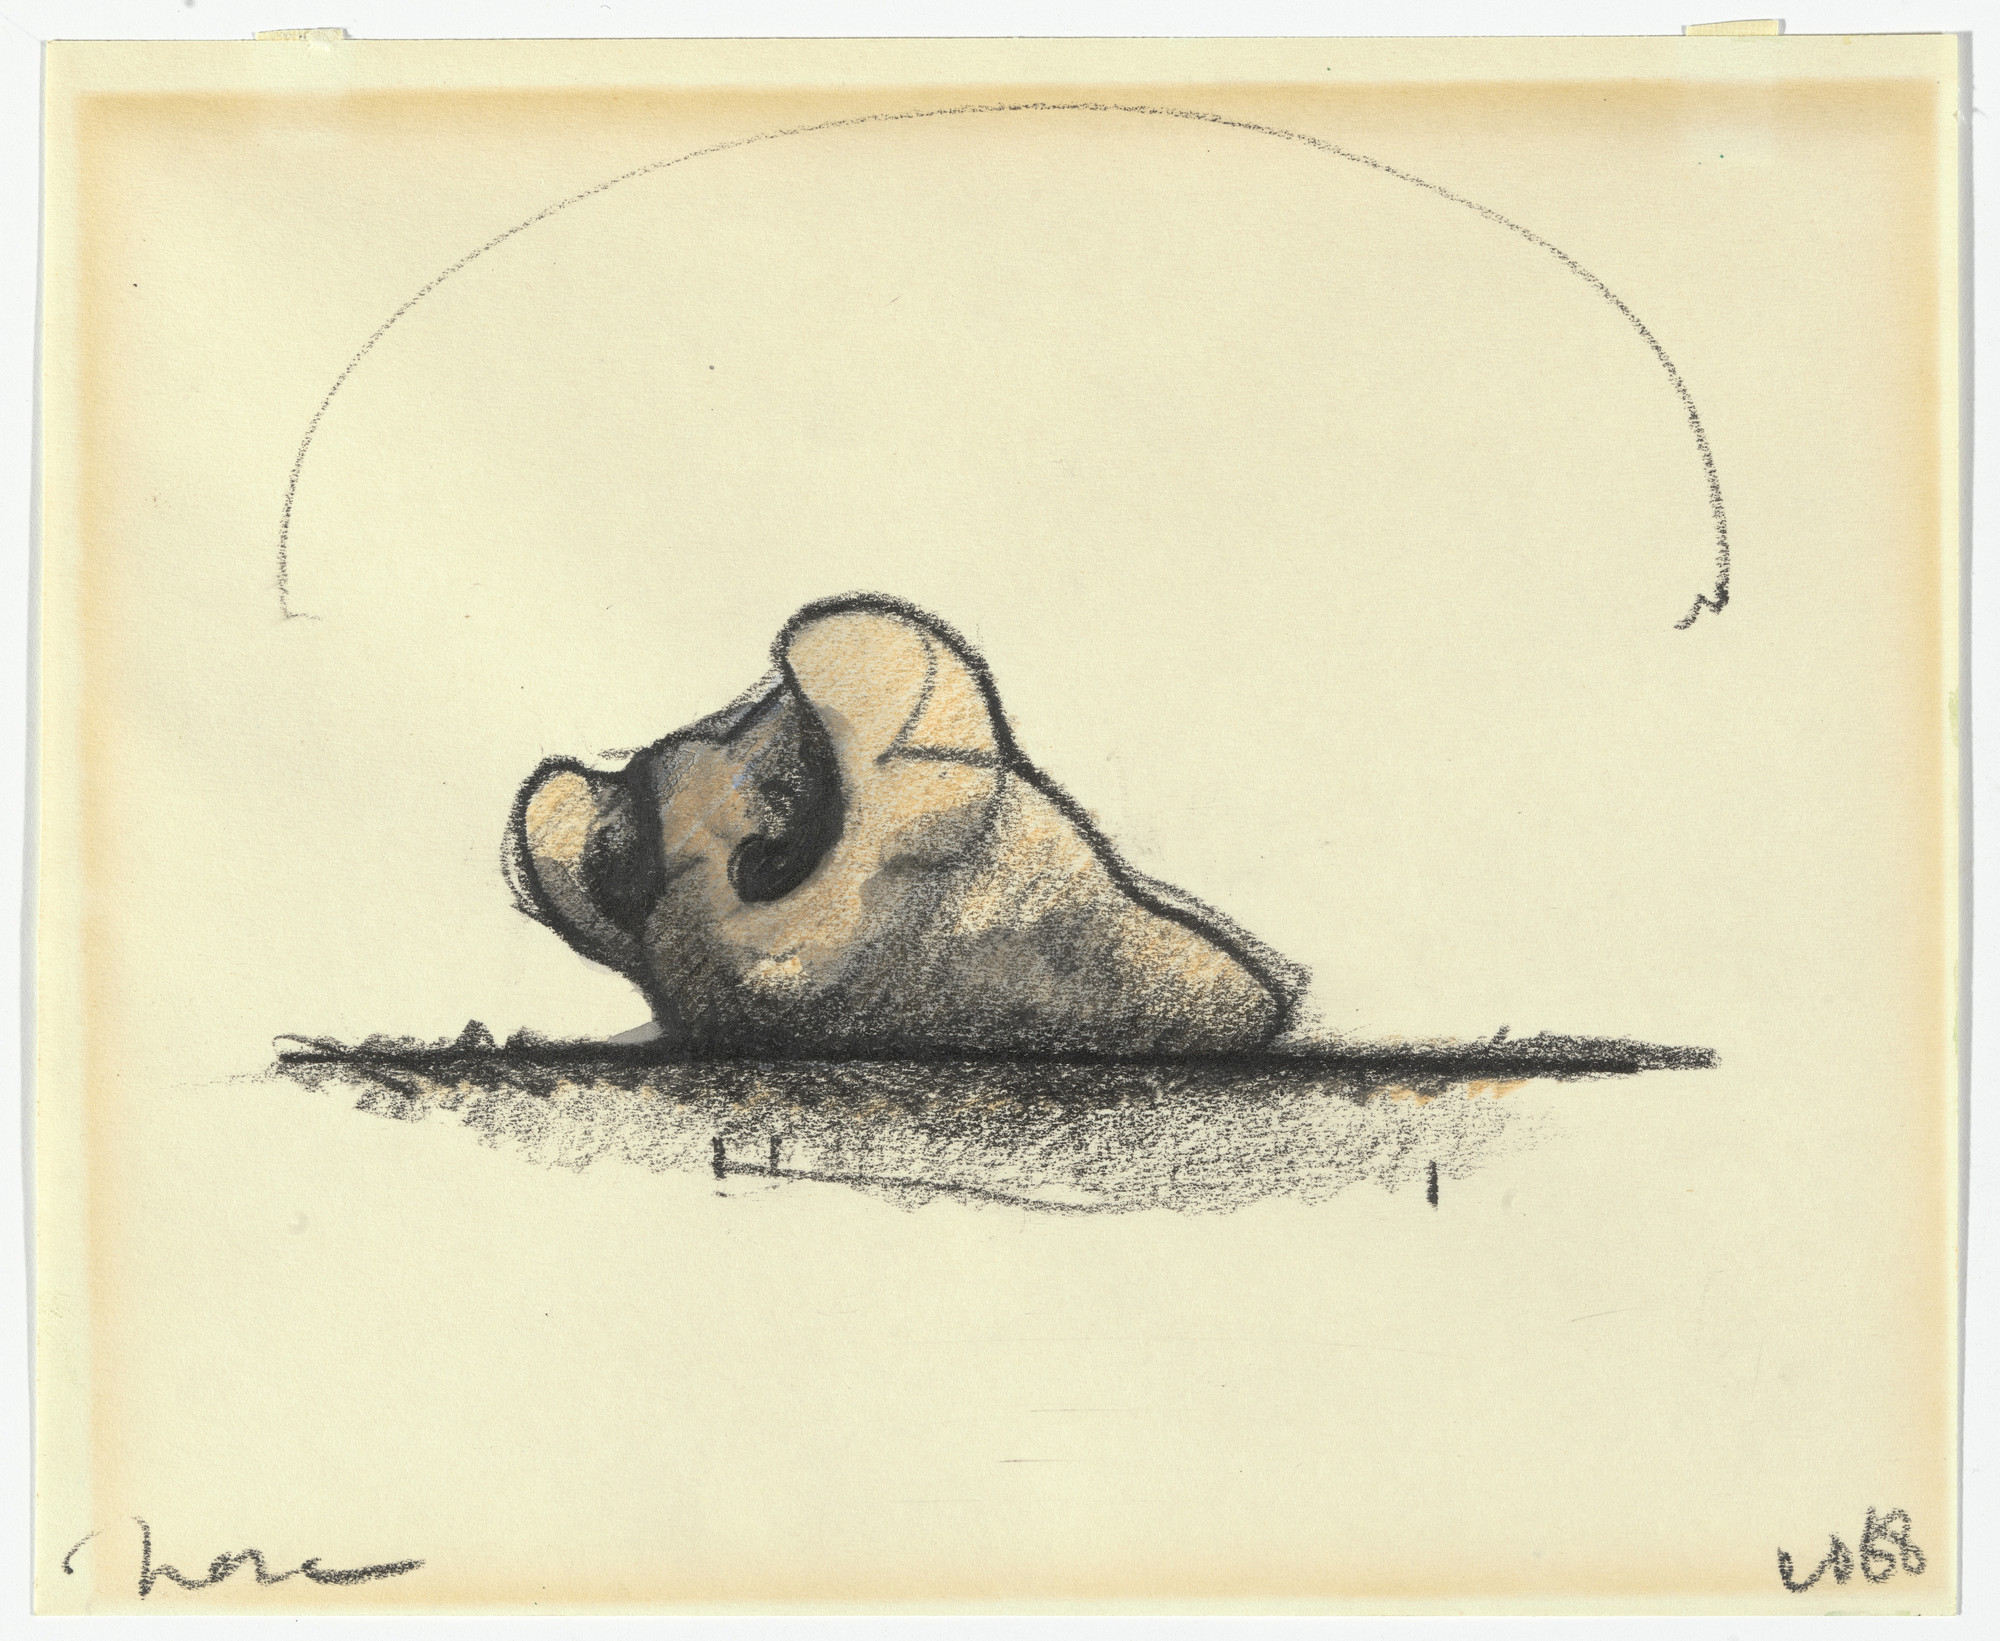 Claes Oldenburg. Inverted Nose in Landscape I. 1968